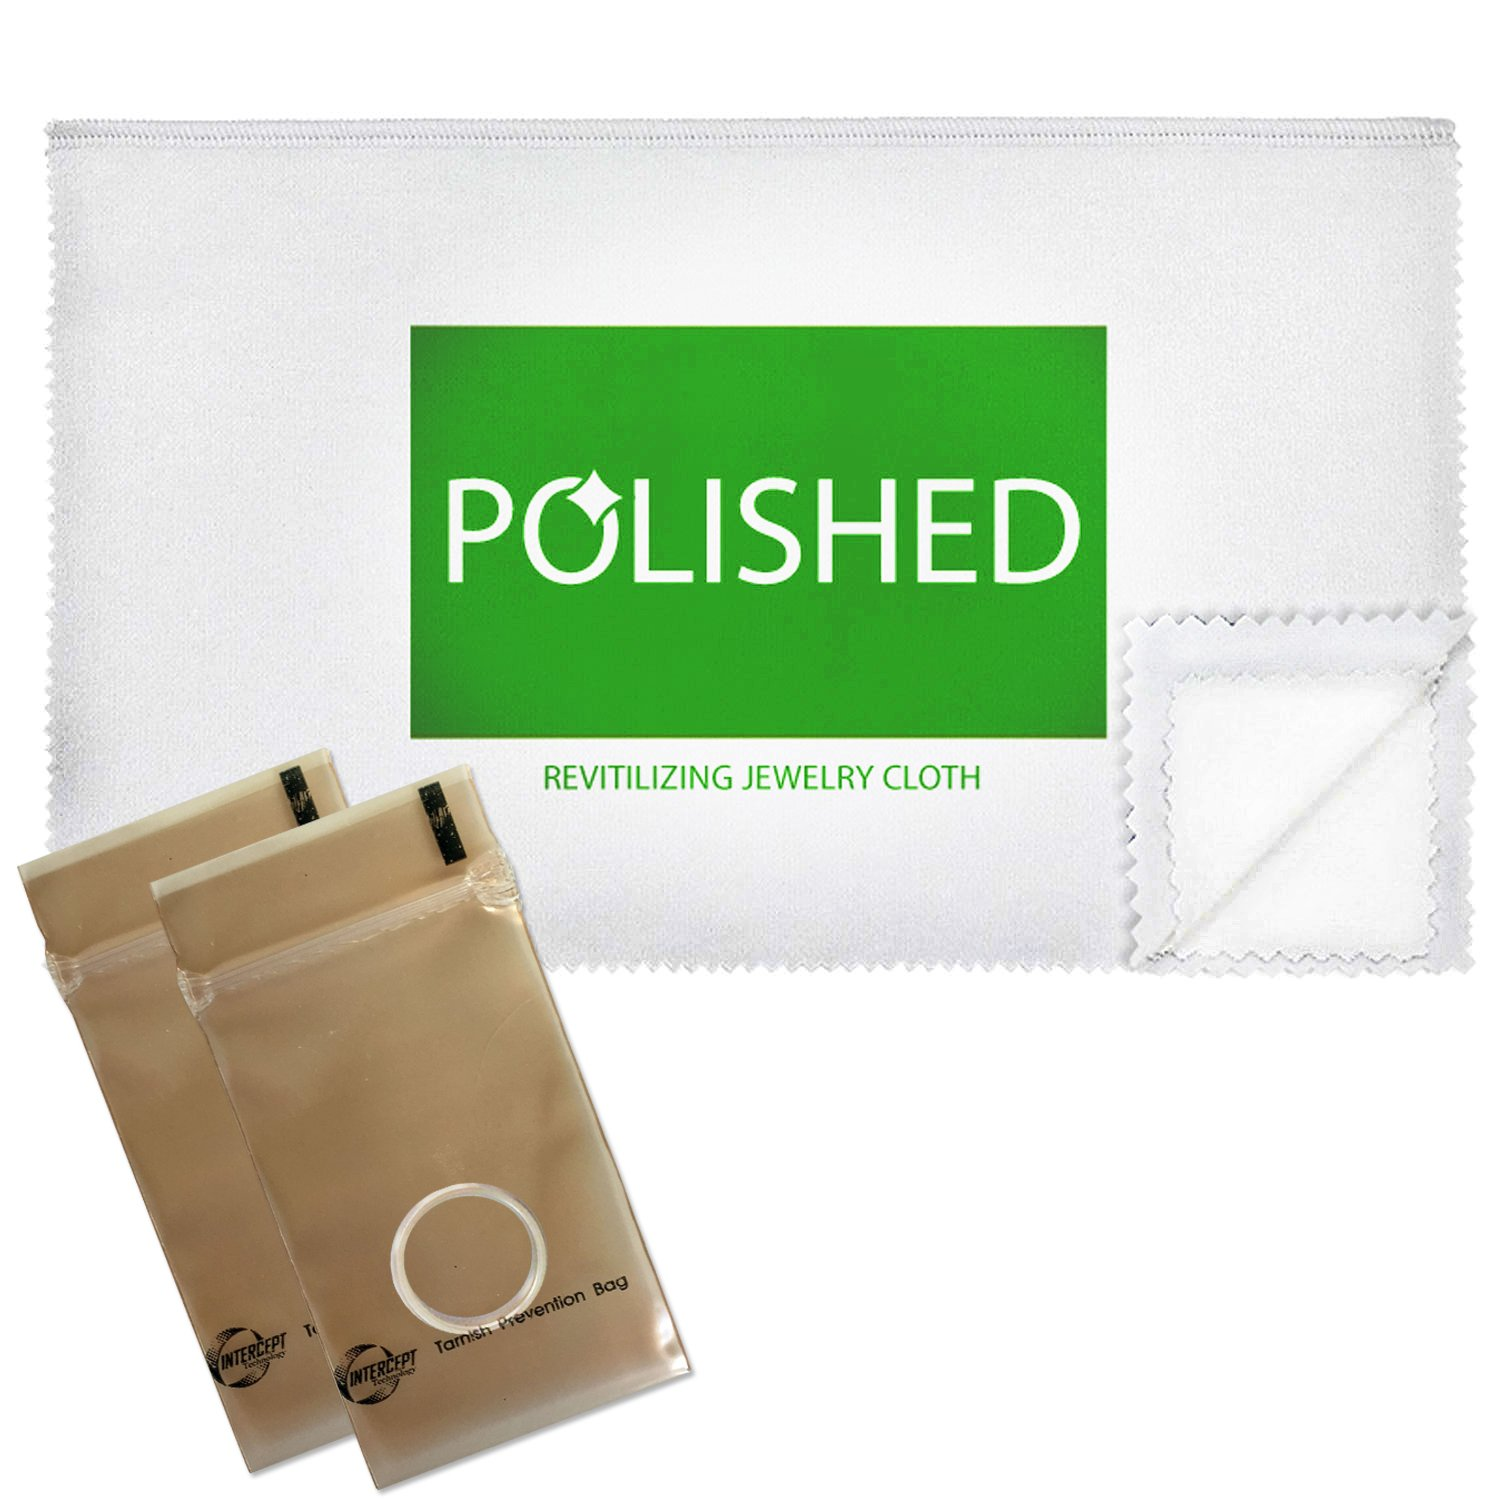 Polished Jewelry Polishing Cloths, Professional Shine in 1-Minute! Set of 3 Jewelry Cleaner Cloths + 2 Anti-Tarnish Storage Bags | Soft Cotton, Non-Scratch Ring Cleaner + Gold, Diamond, Silver Cleaner by Polished (Image #2)